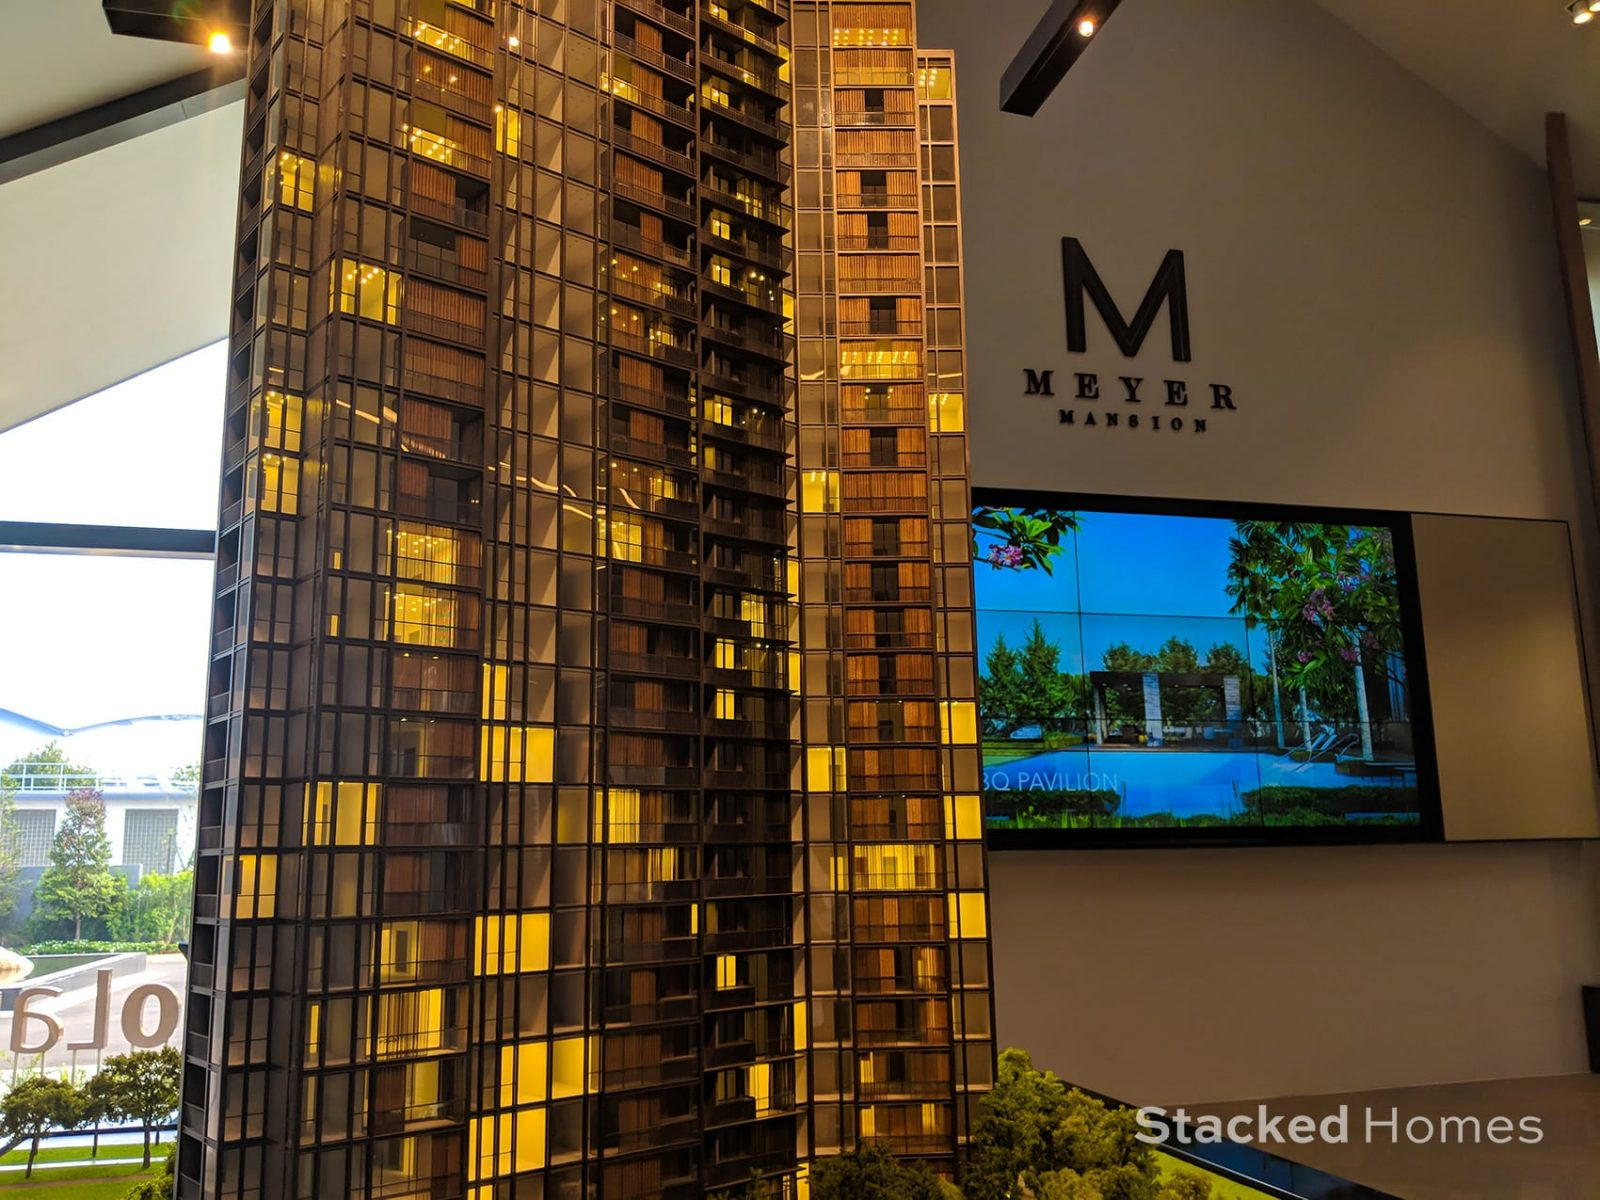 Meyer Mansion Condo Singapore